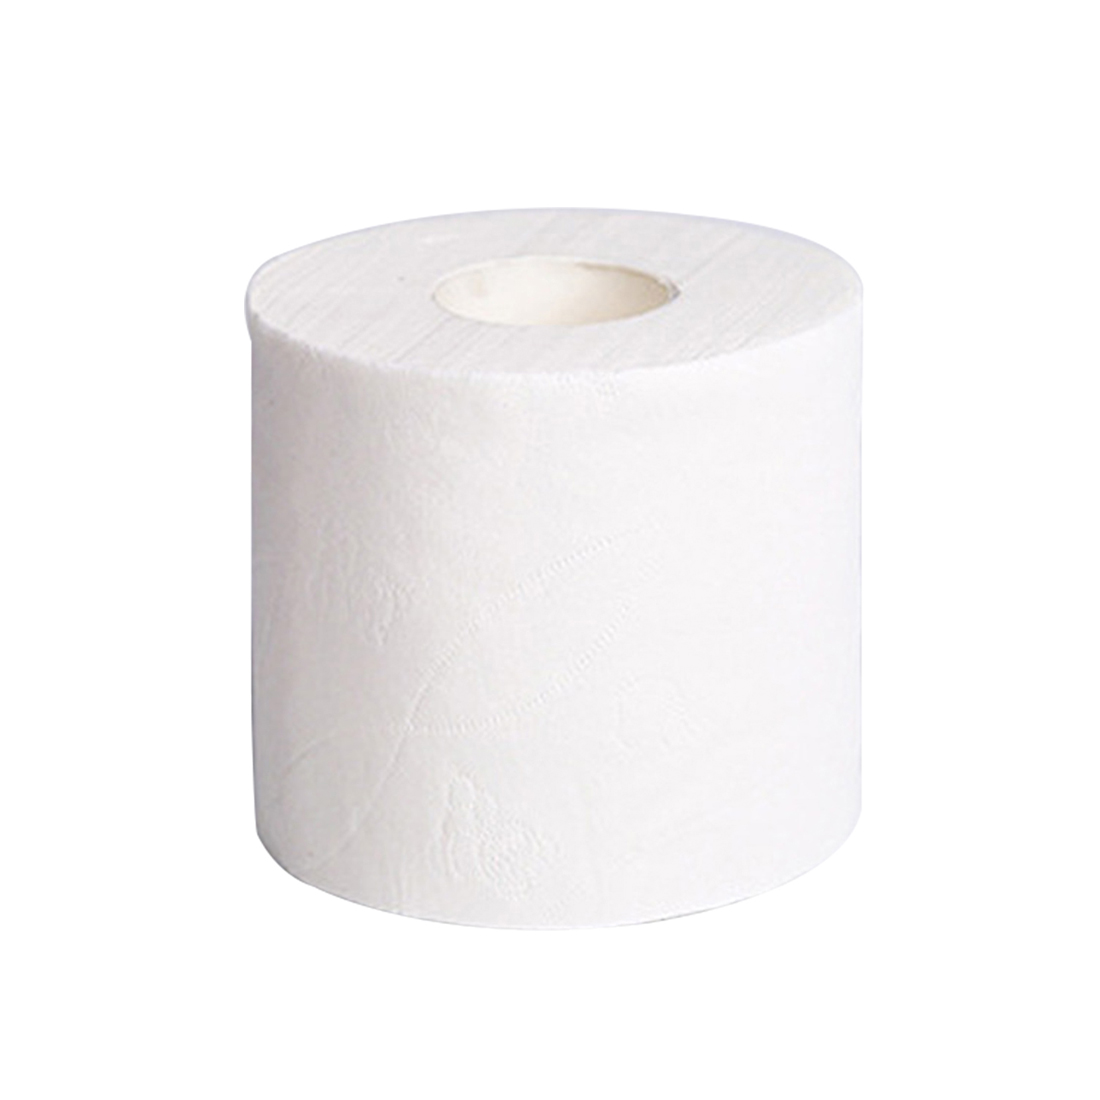 1pcs/bag 3ply White Toilet Tissue Prevent Flu Cleaning Toilet Tissue Clean Soft Toilet Paper Hollow Replacement Roll Paper Z1